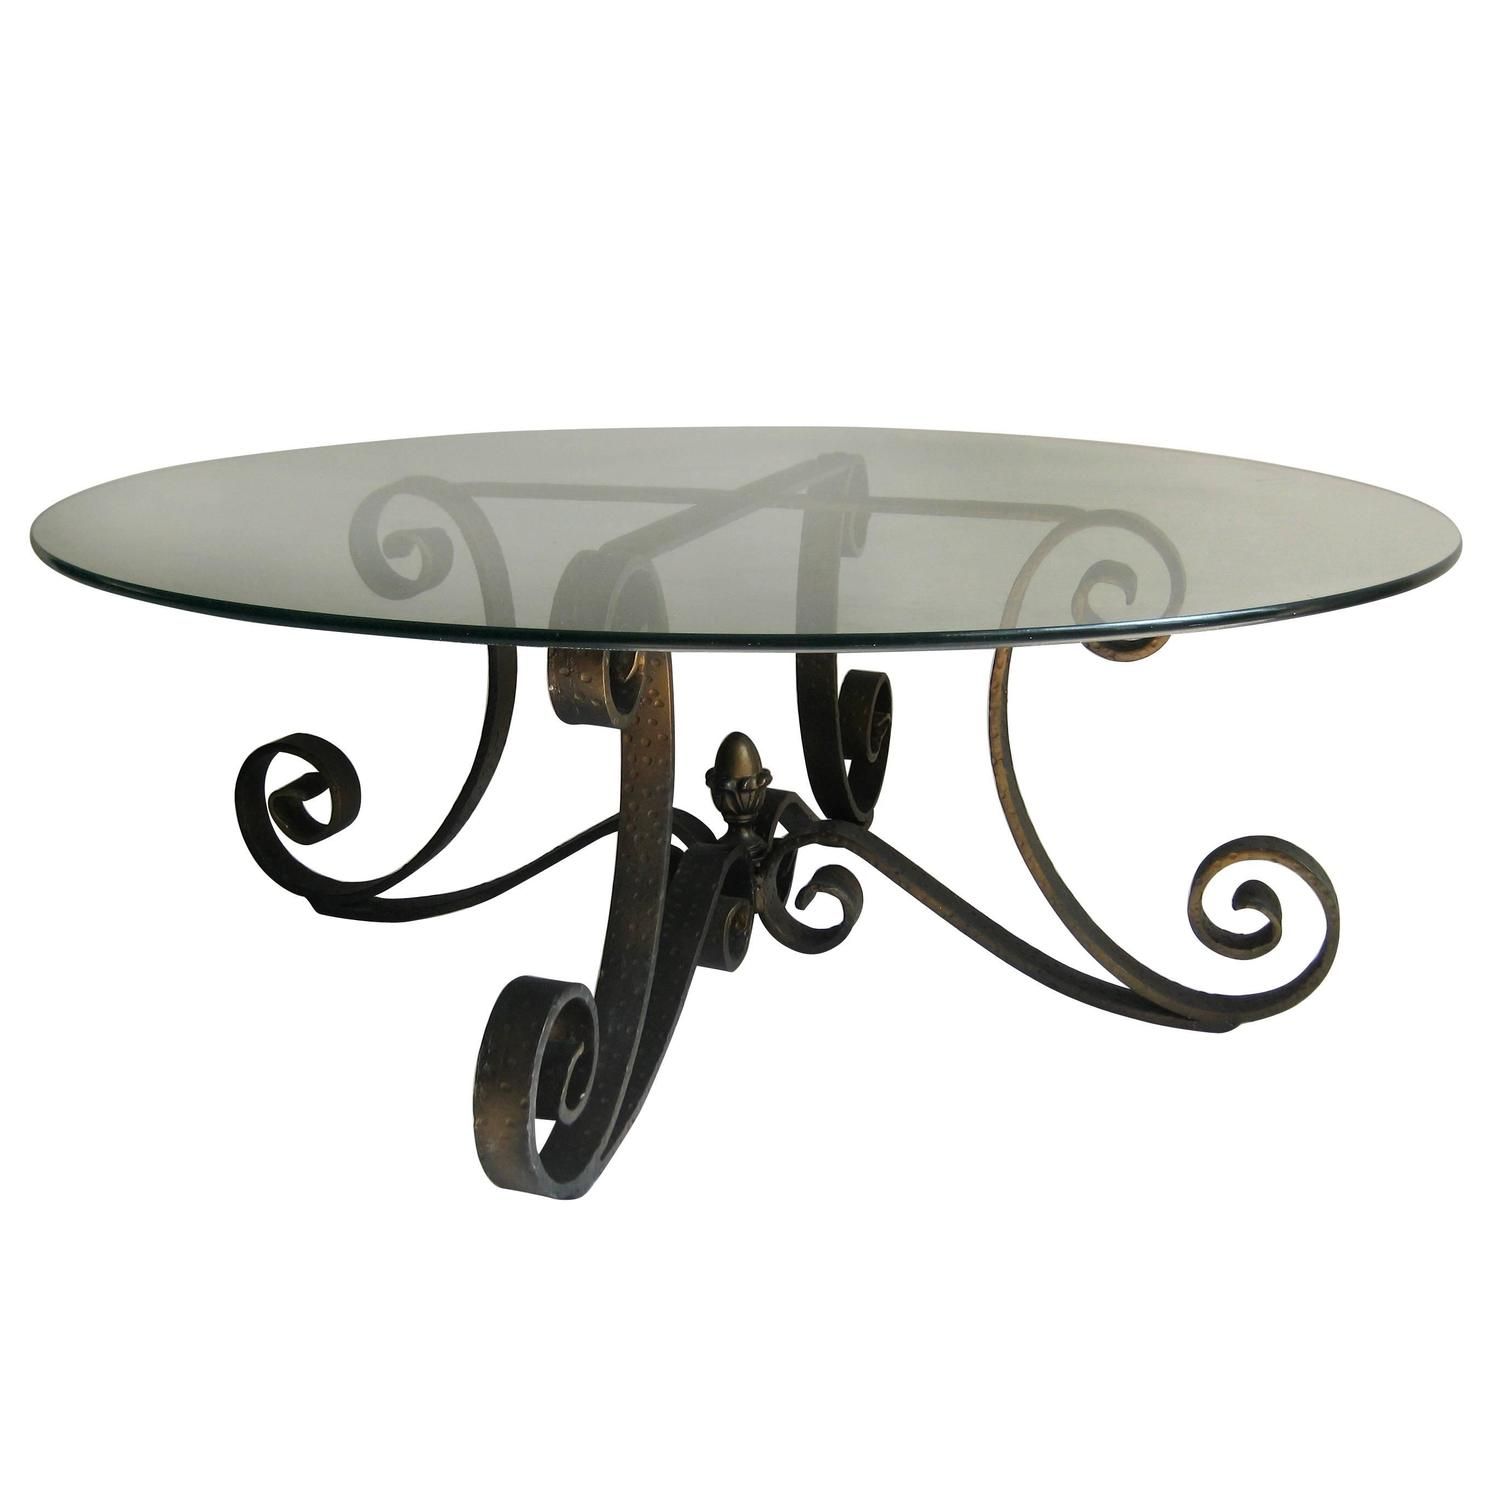 Mid Century Scrolled Forged Iron Table Base with Round Glass Top at